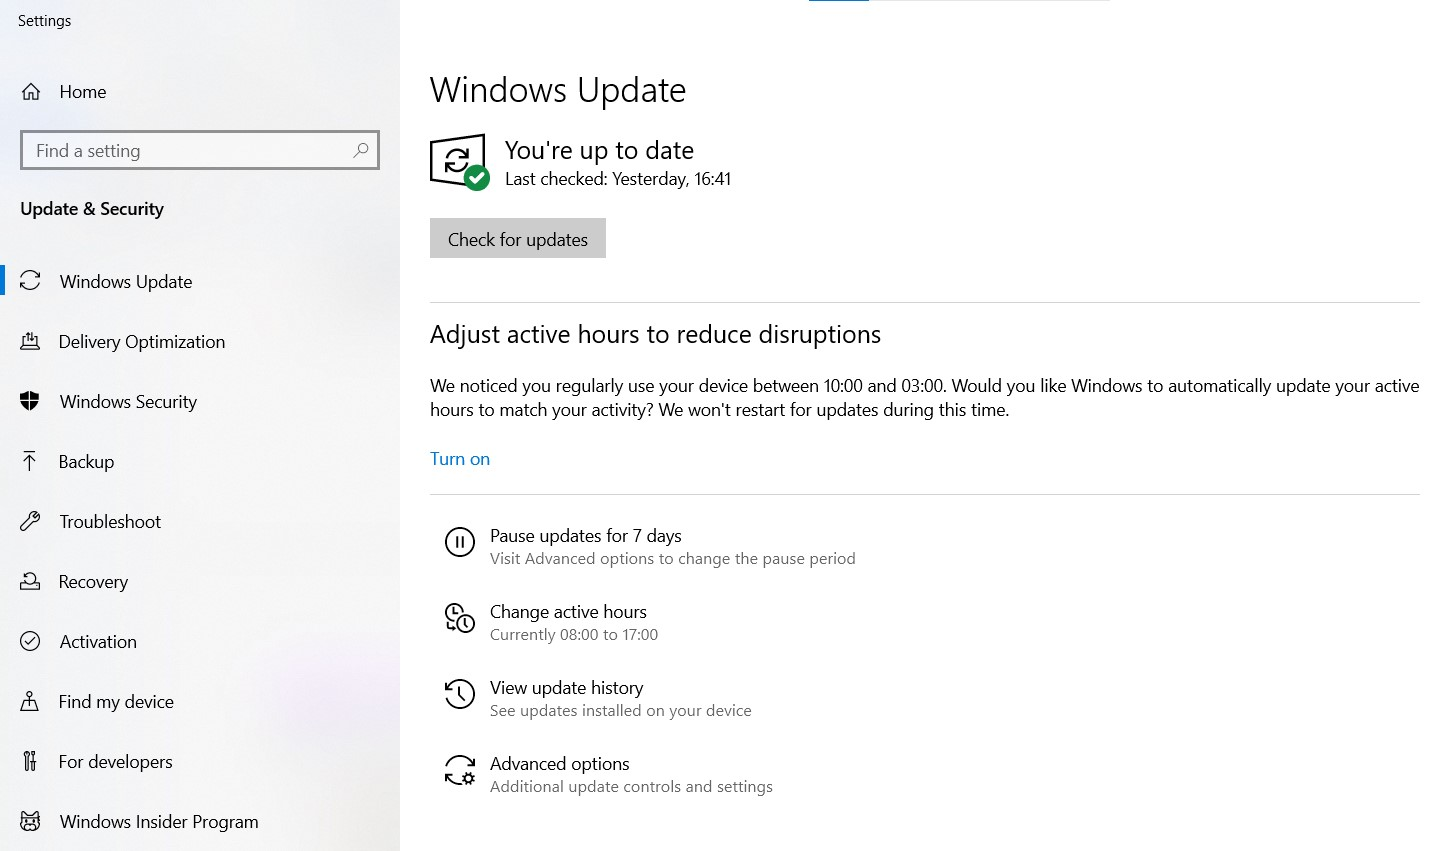 The Windows Update page in the Windows settings